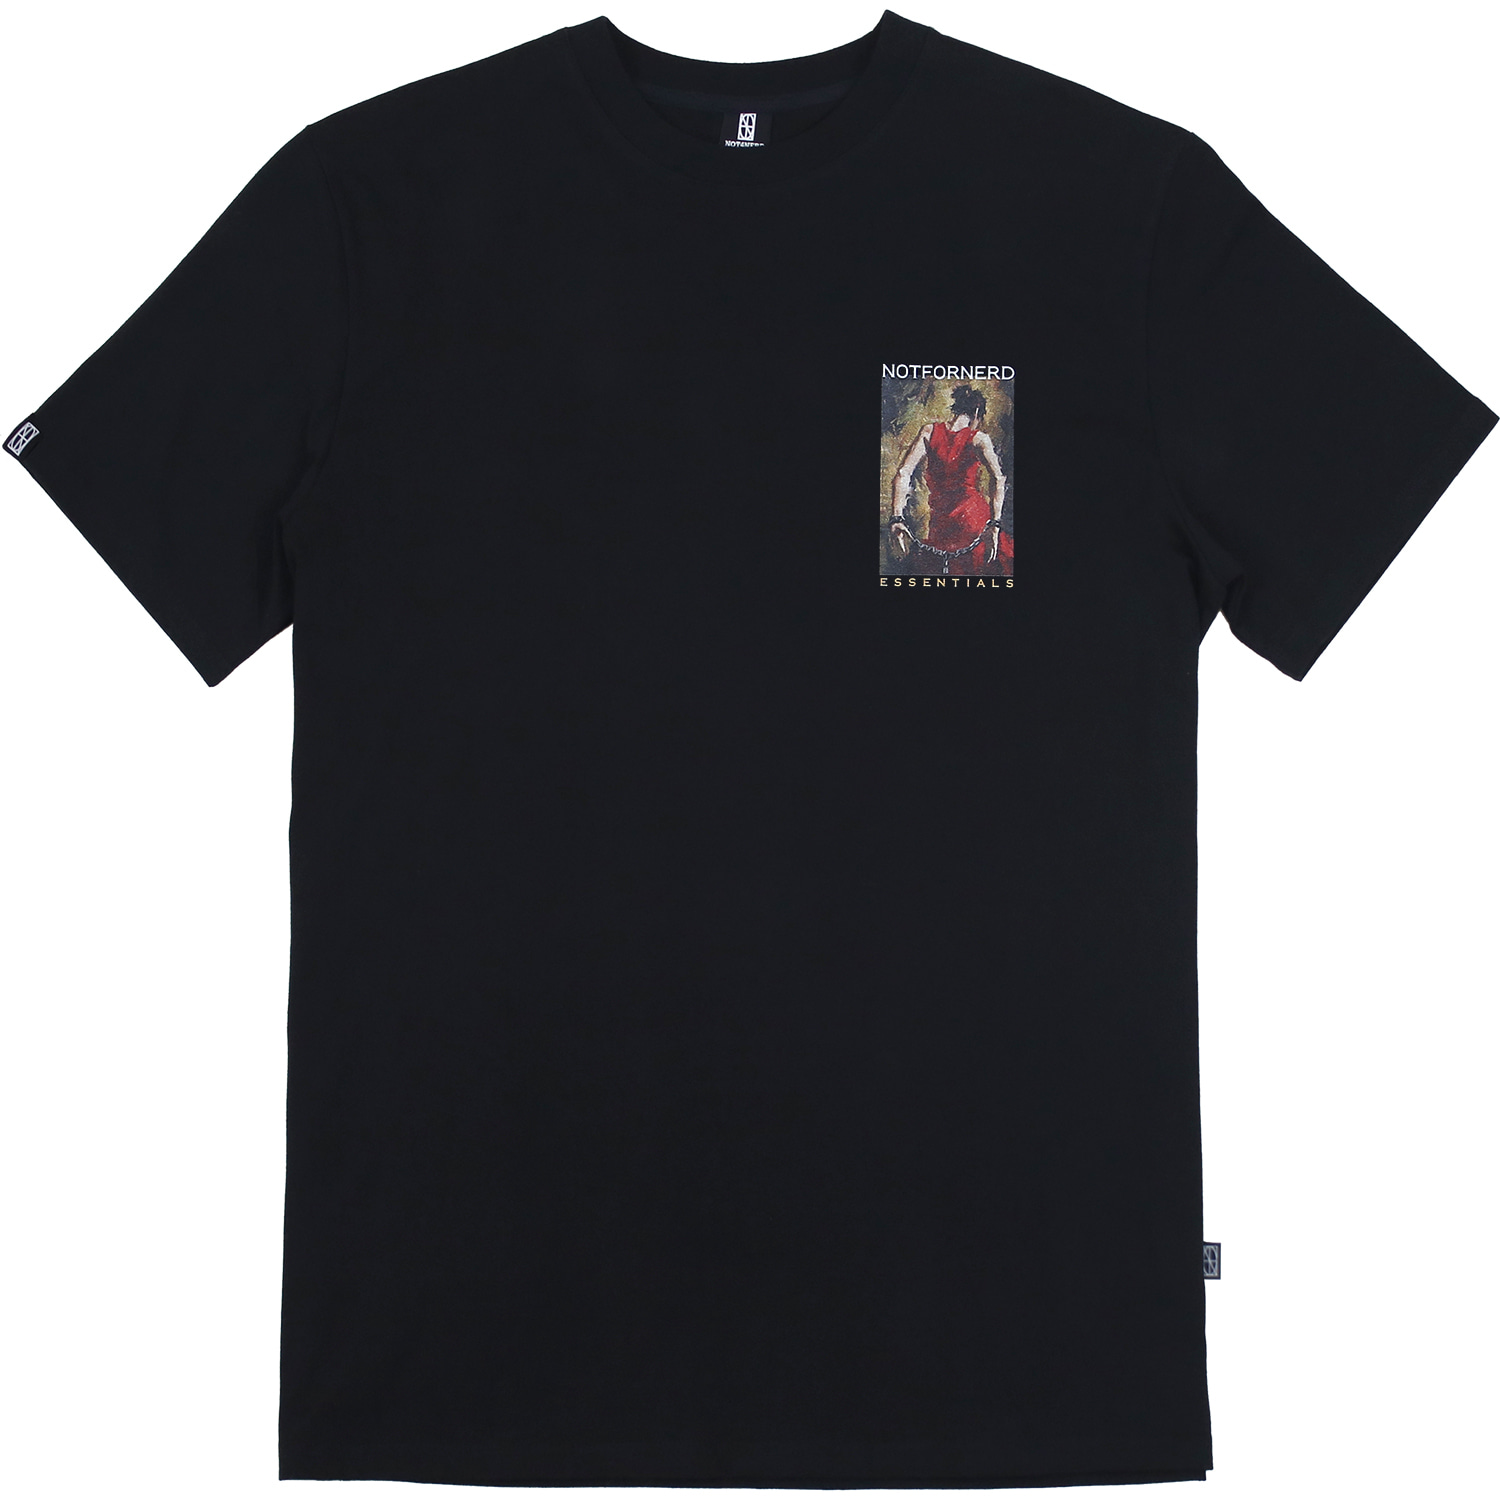 In Chains T-Shirts [Black],NOT4NERD